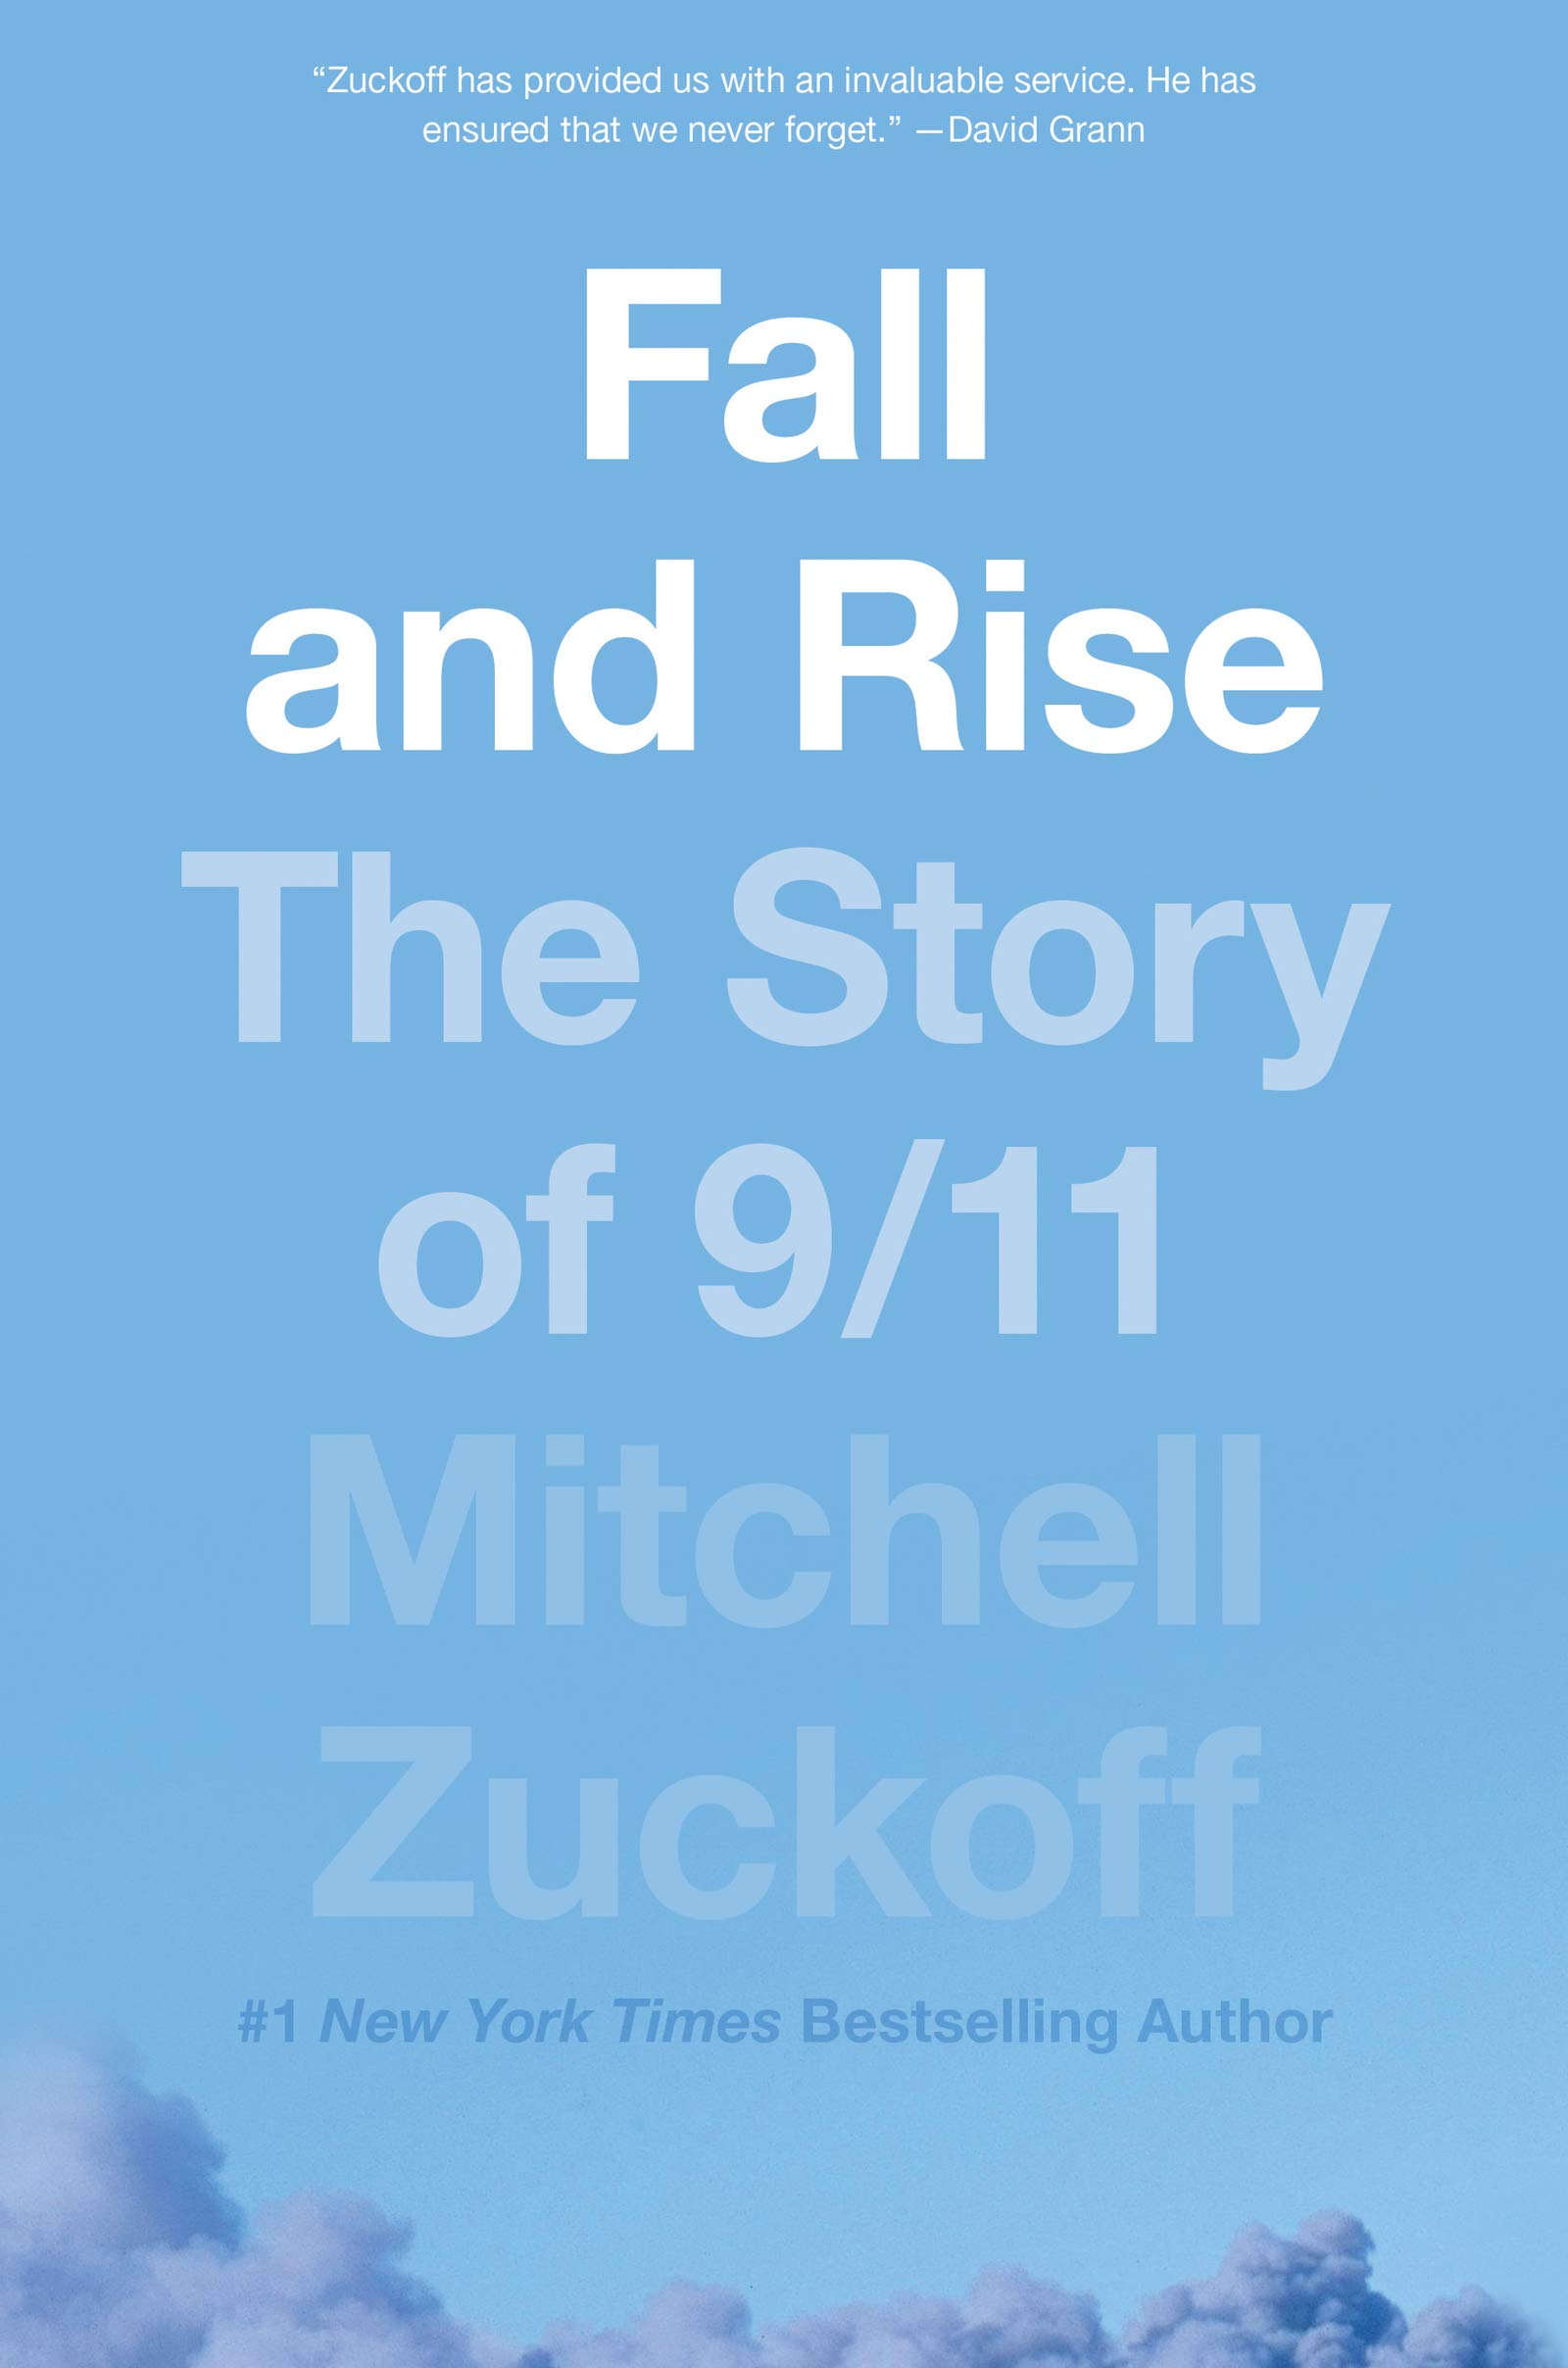 Years in the making, this spellbinding, heartbreaking, and ultimately uplifting narrative is an unforgettable portrait of 9/11.  This is a 9/11 book like no other. Masterfully weaving together multiple strands of the events in New York, at the Pentagon, and in Shanksville, Pennsylvania, Fall and Rise is a mesmerizing, minute-by-minute account of that terrible day.